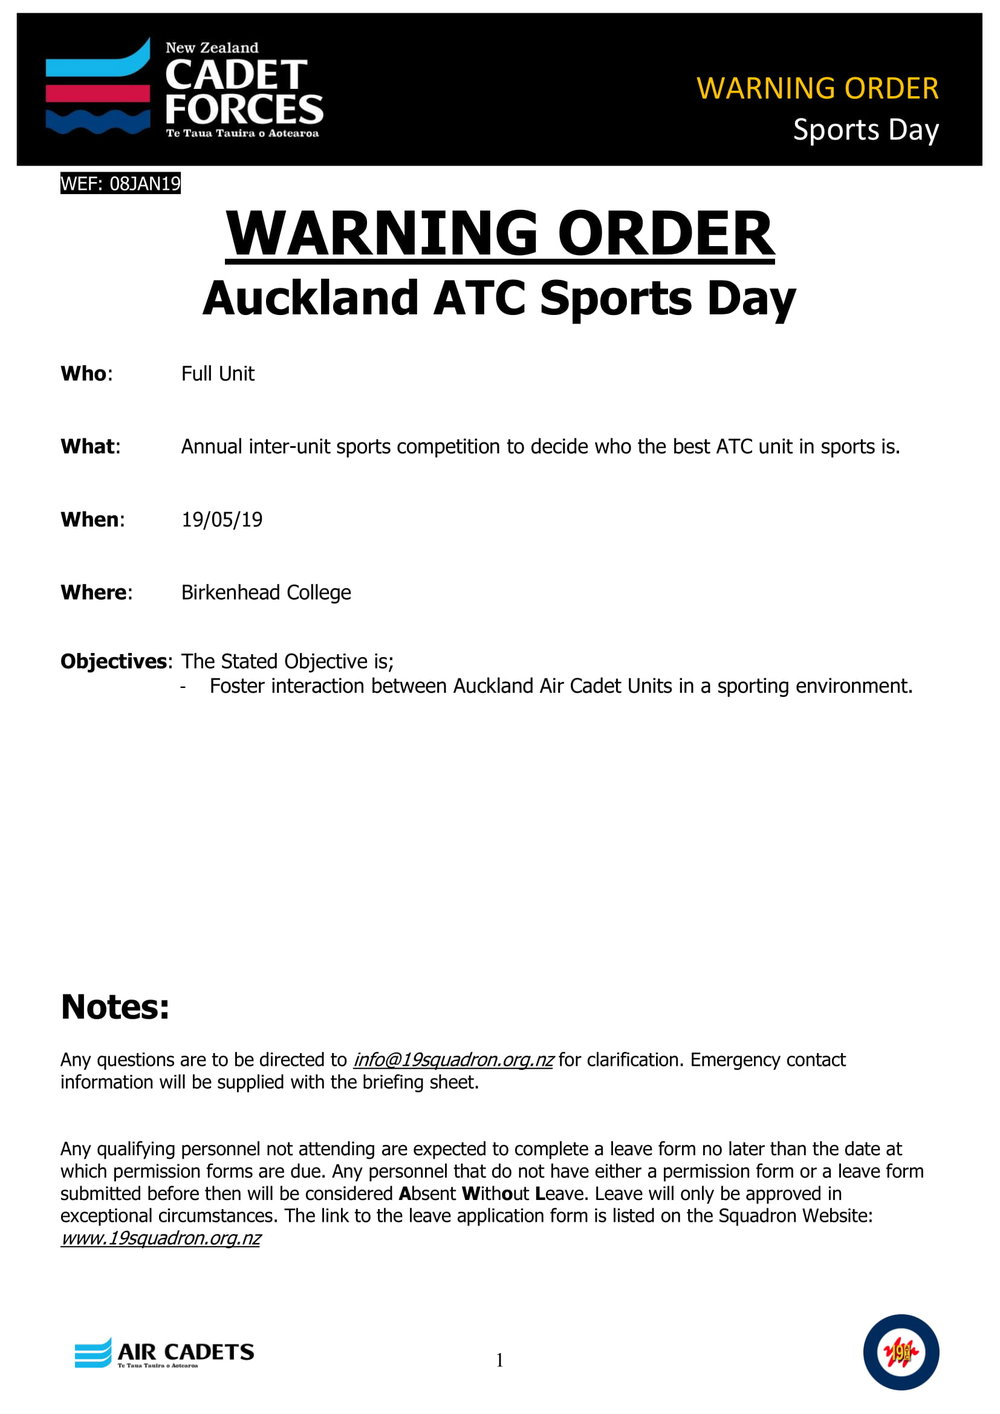 Sports Day - Warning Order-1.jpg